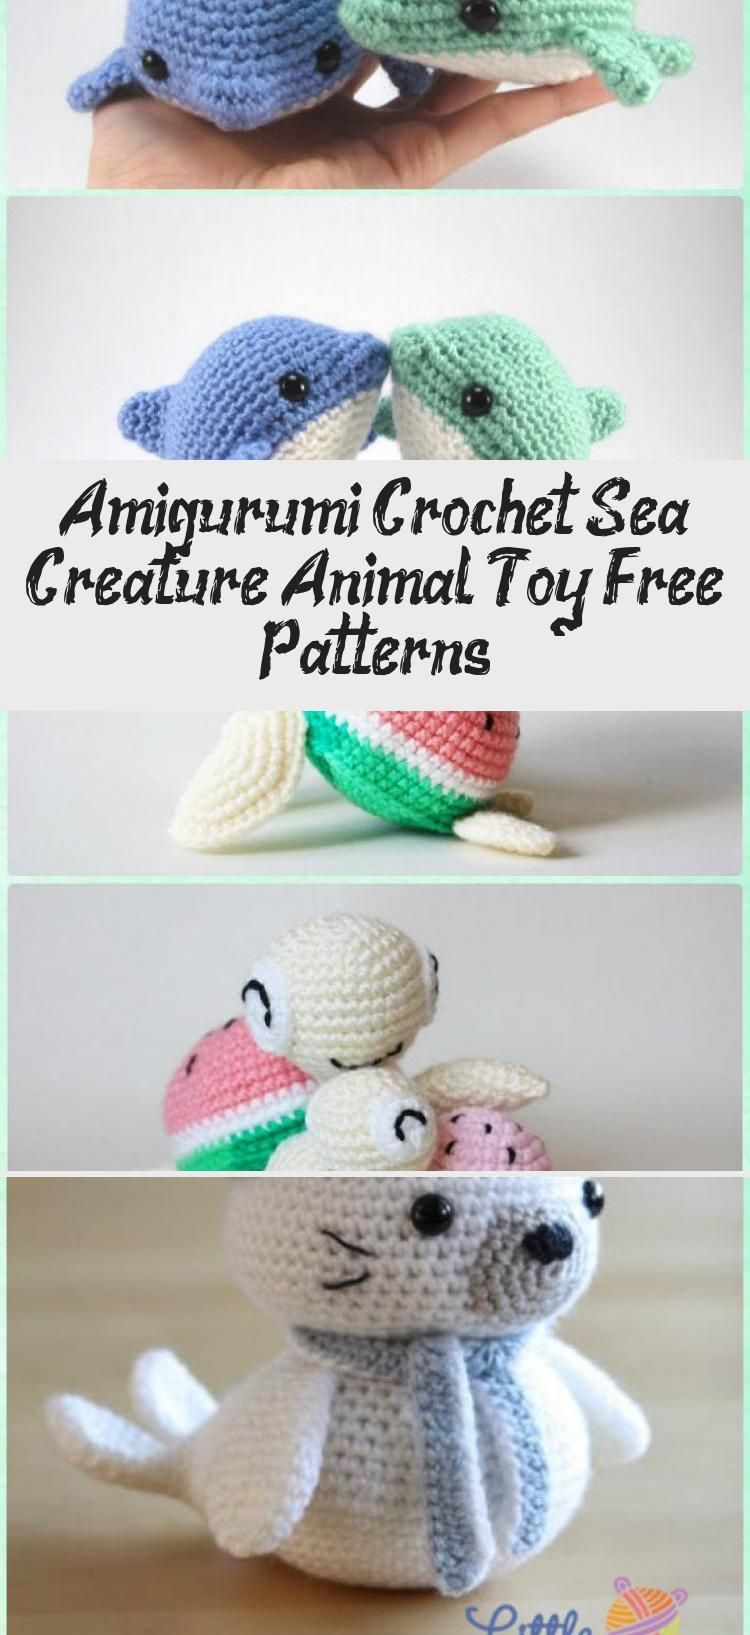 20 Free Amigurumi Crochet Sea Creature Animal Toy Patterns | 1635x750